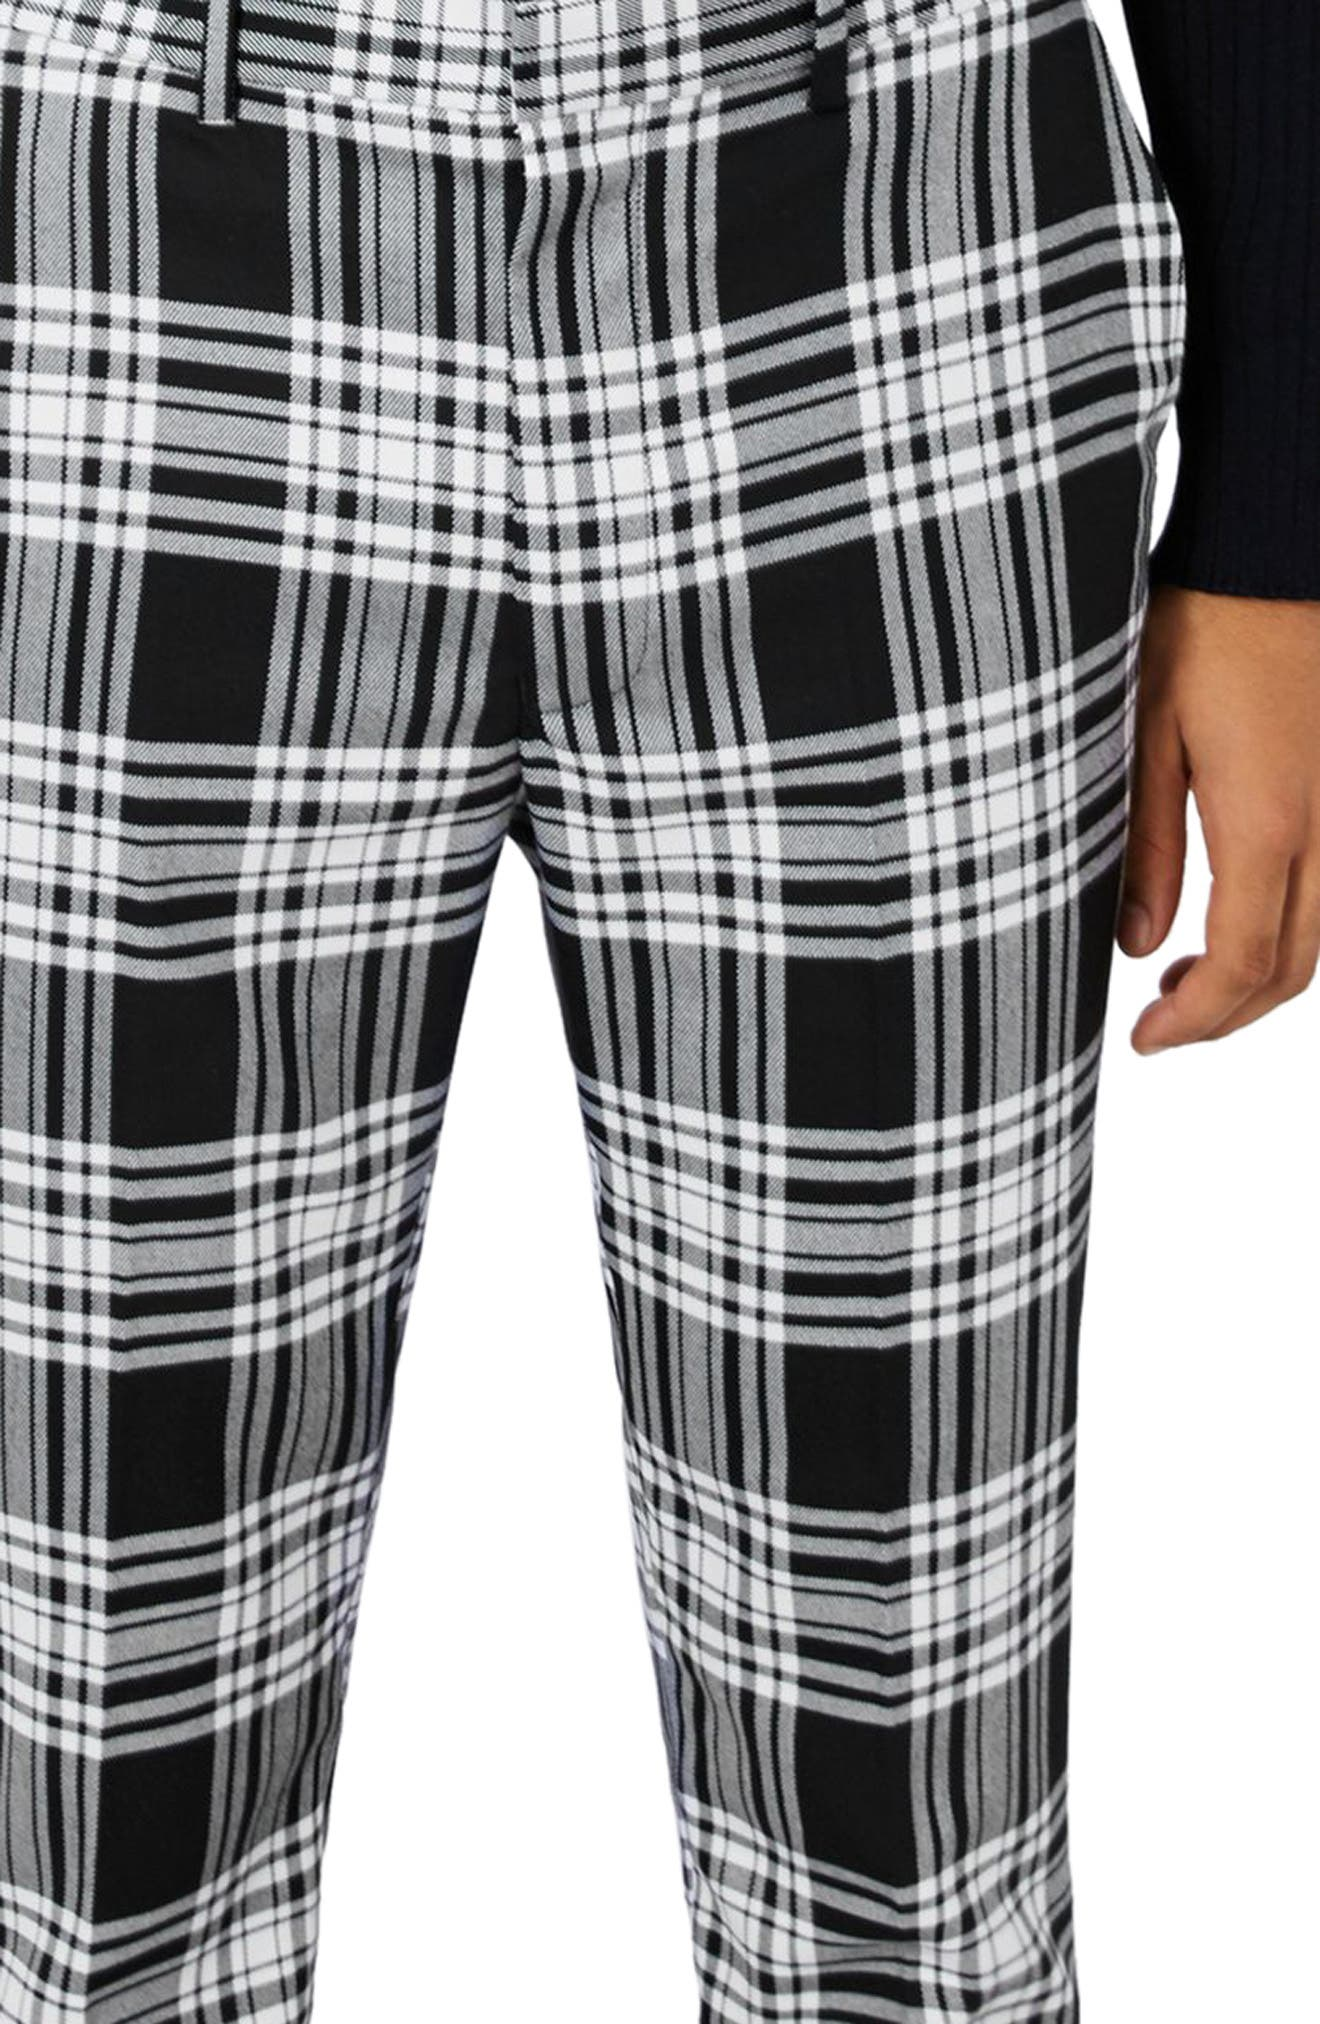 Plaid Ultra Skinny Fit Crop Trousers,                             Alternate thumbnail 3, color,                             001